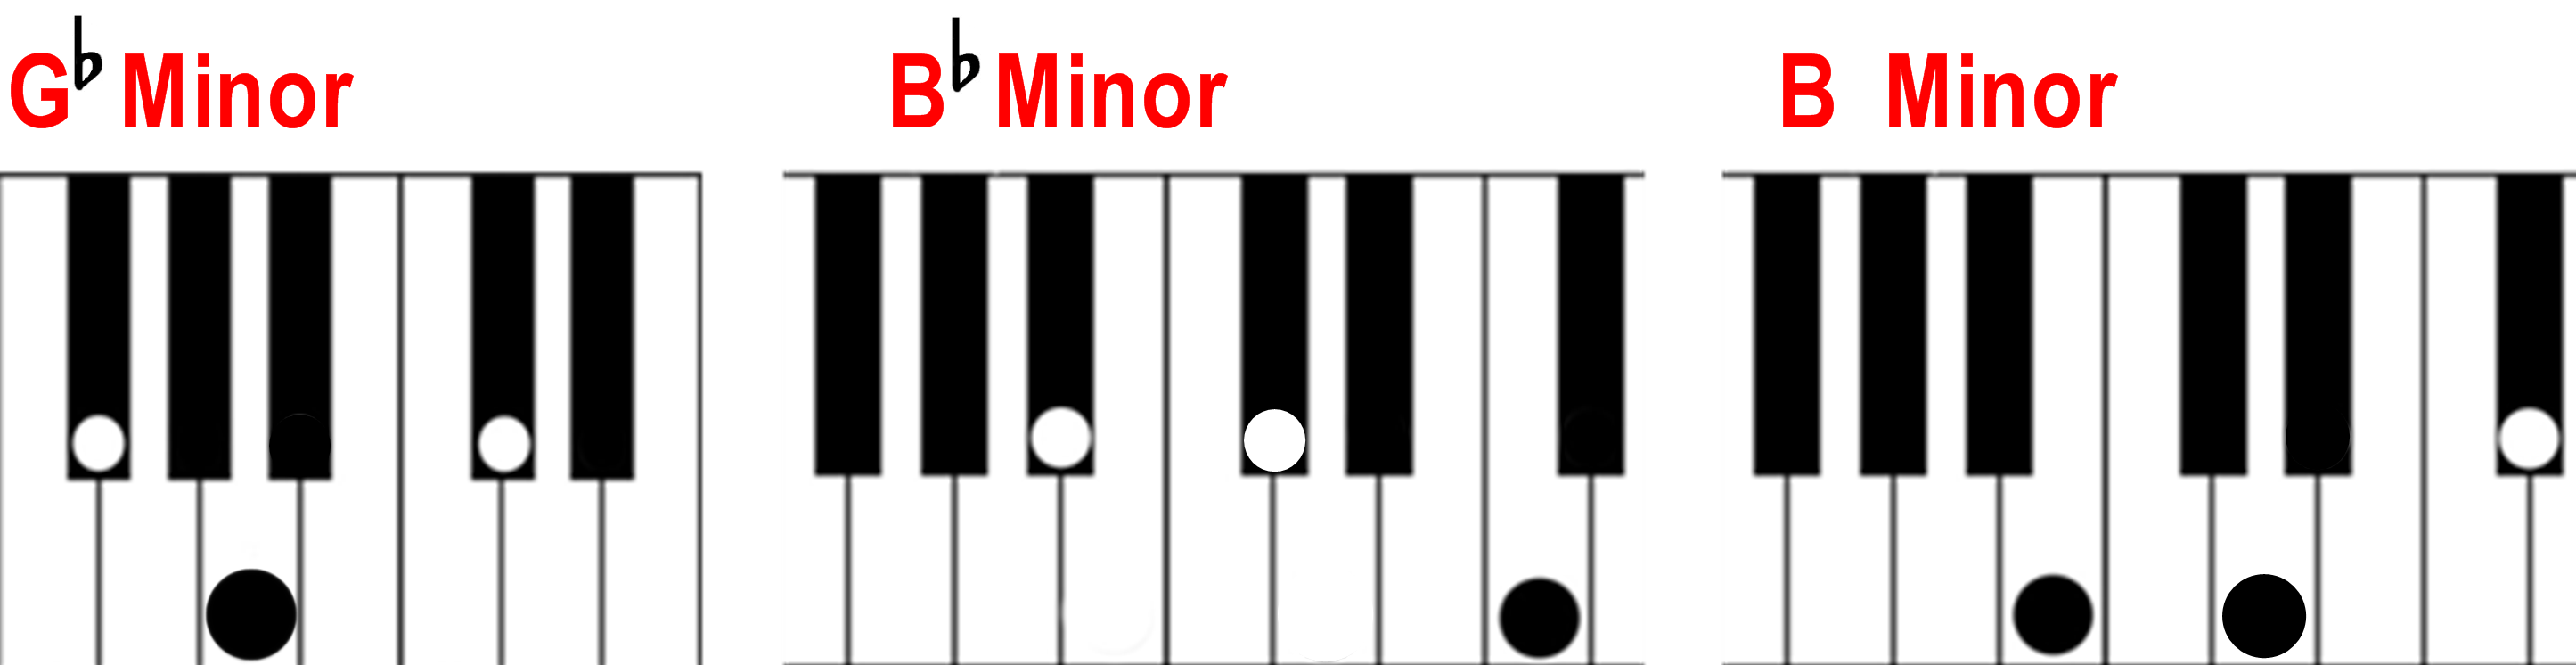 Finding a minor chord on the piano g flat minor b flat minor and b minor piano chords hexwebz Gallery